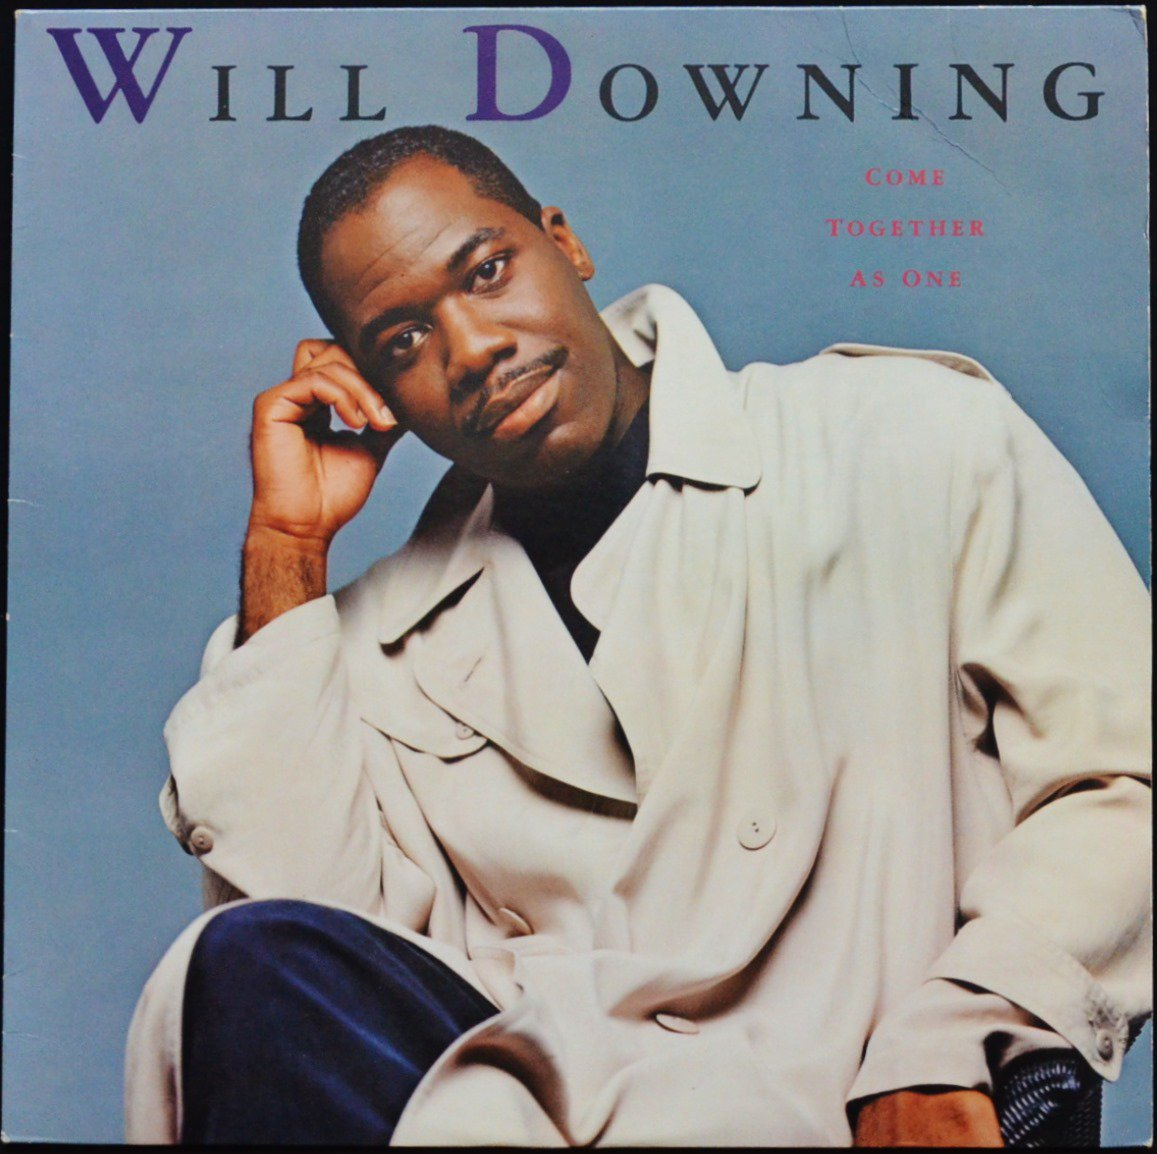 WILL DOWNING / COME TOGETHER AS ONE (LP)